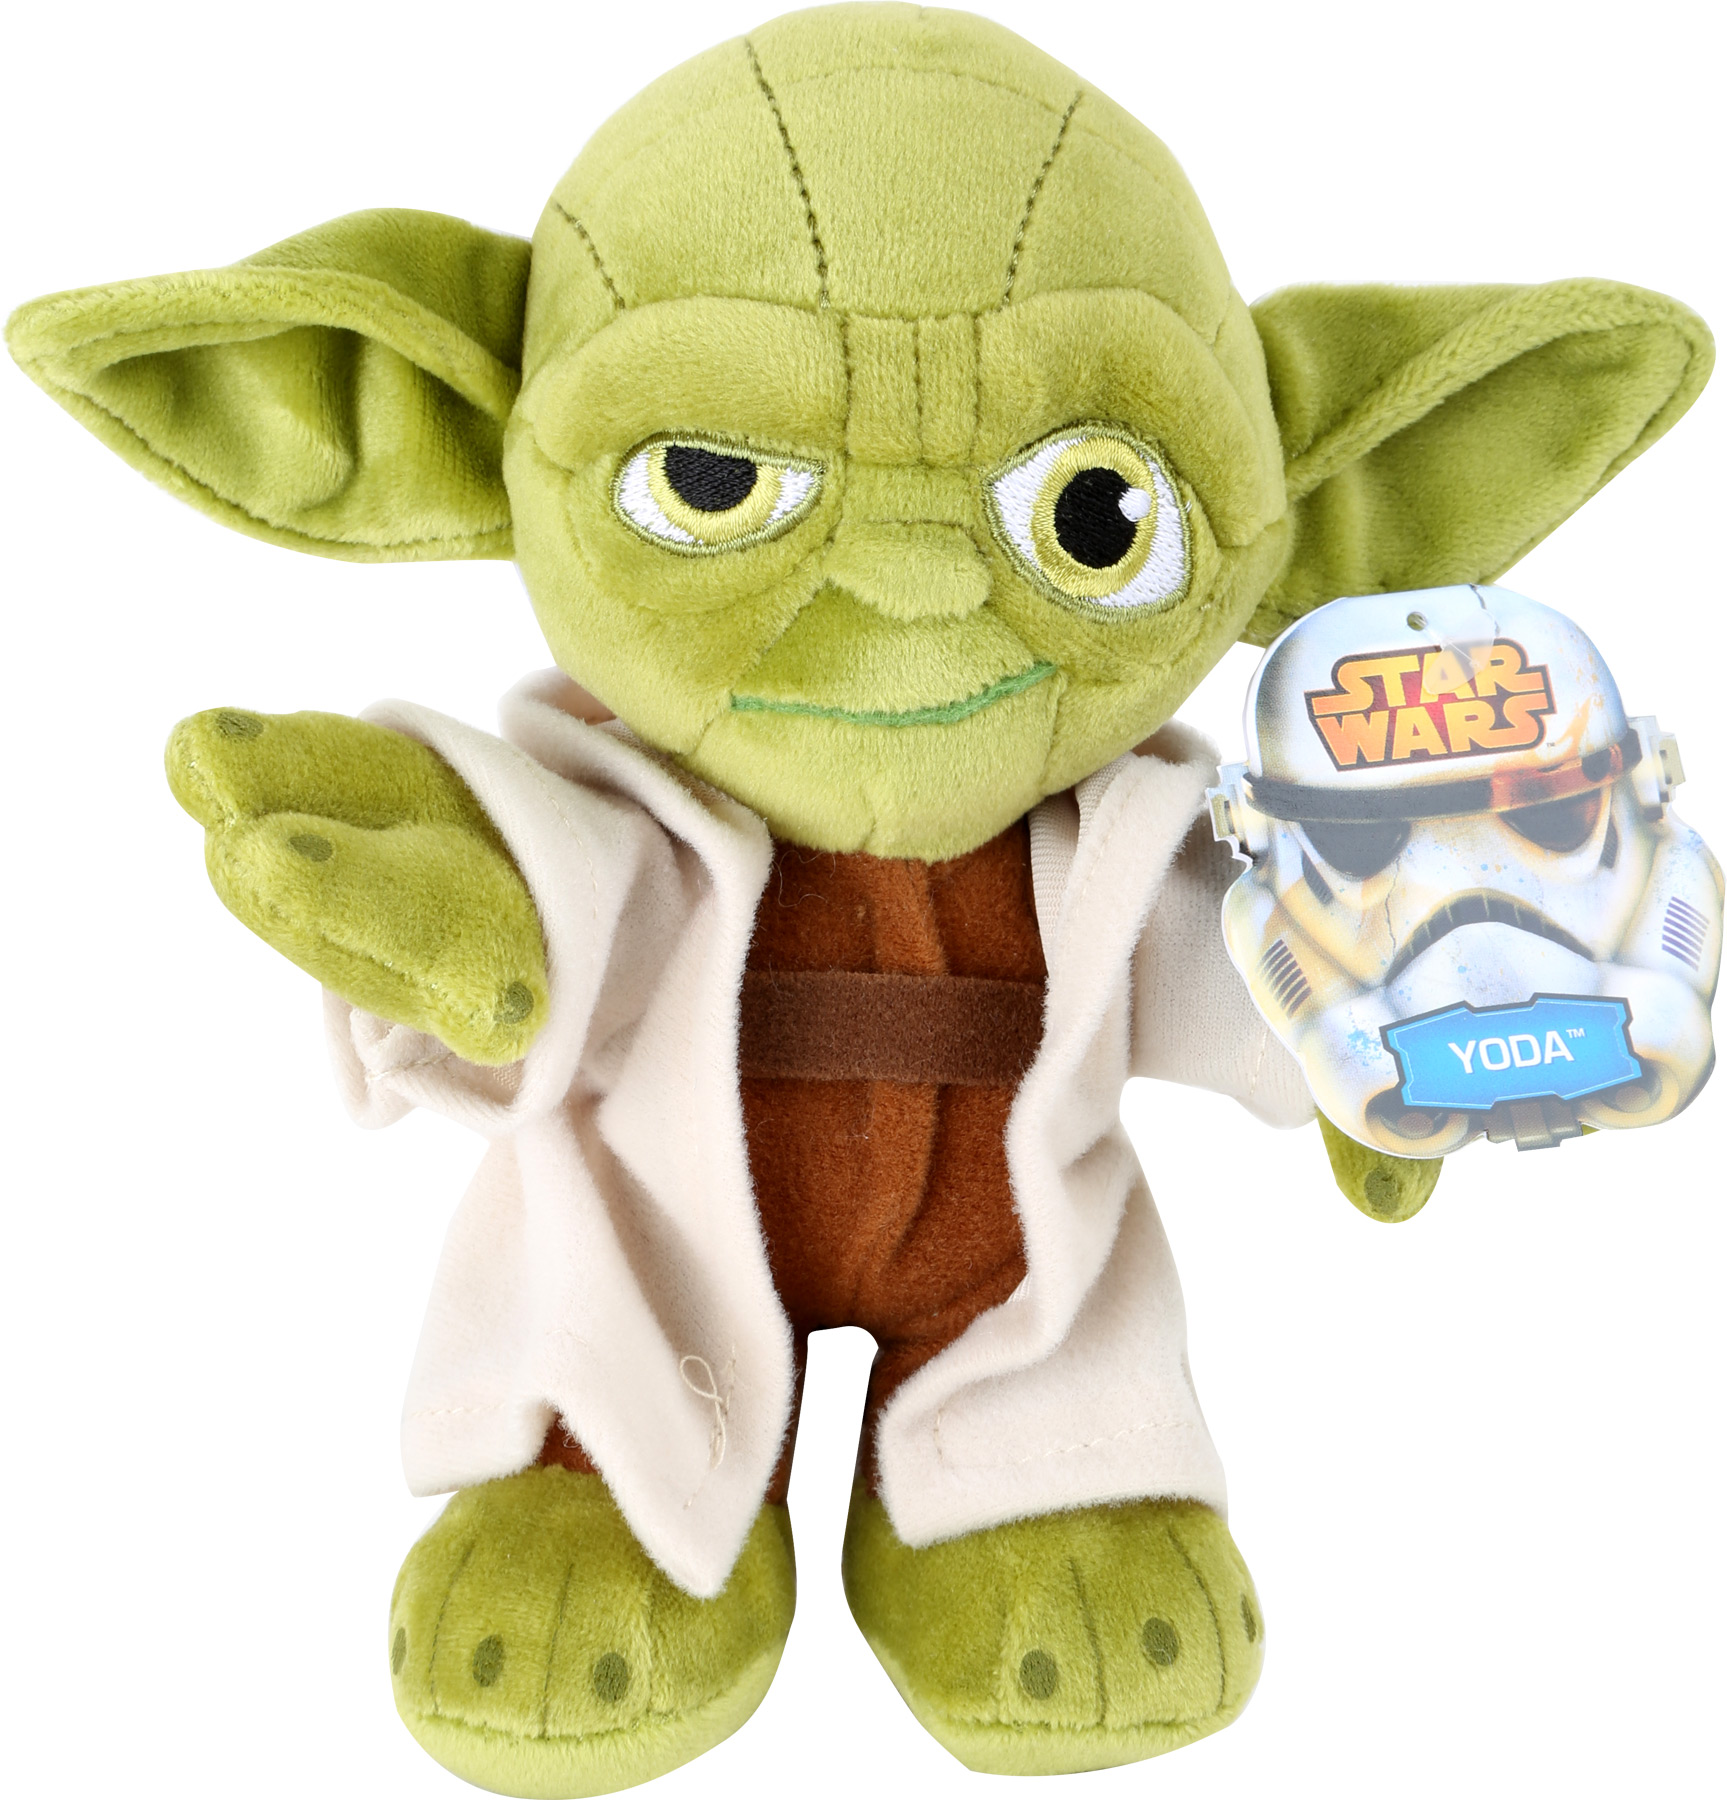 Small Foot Star Wars Yoda